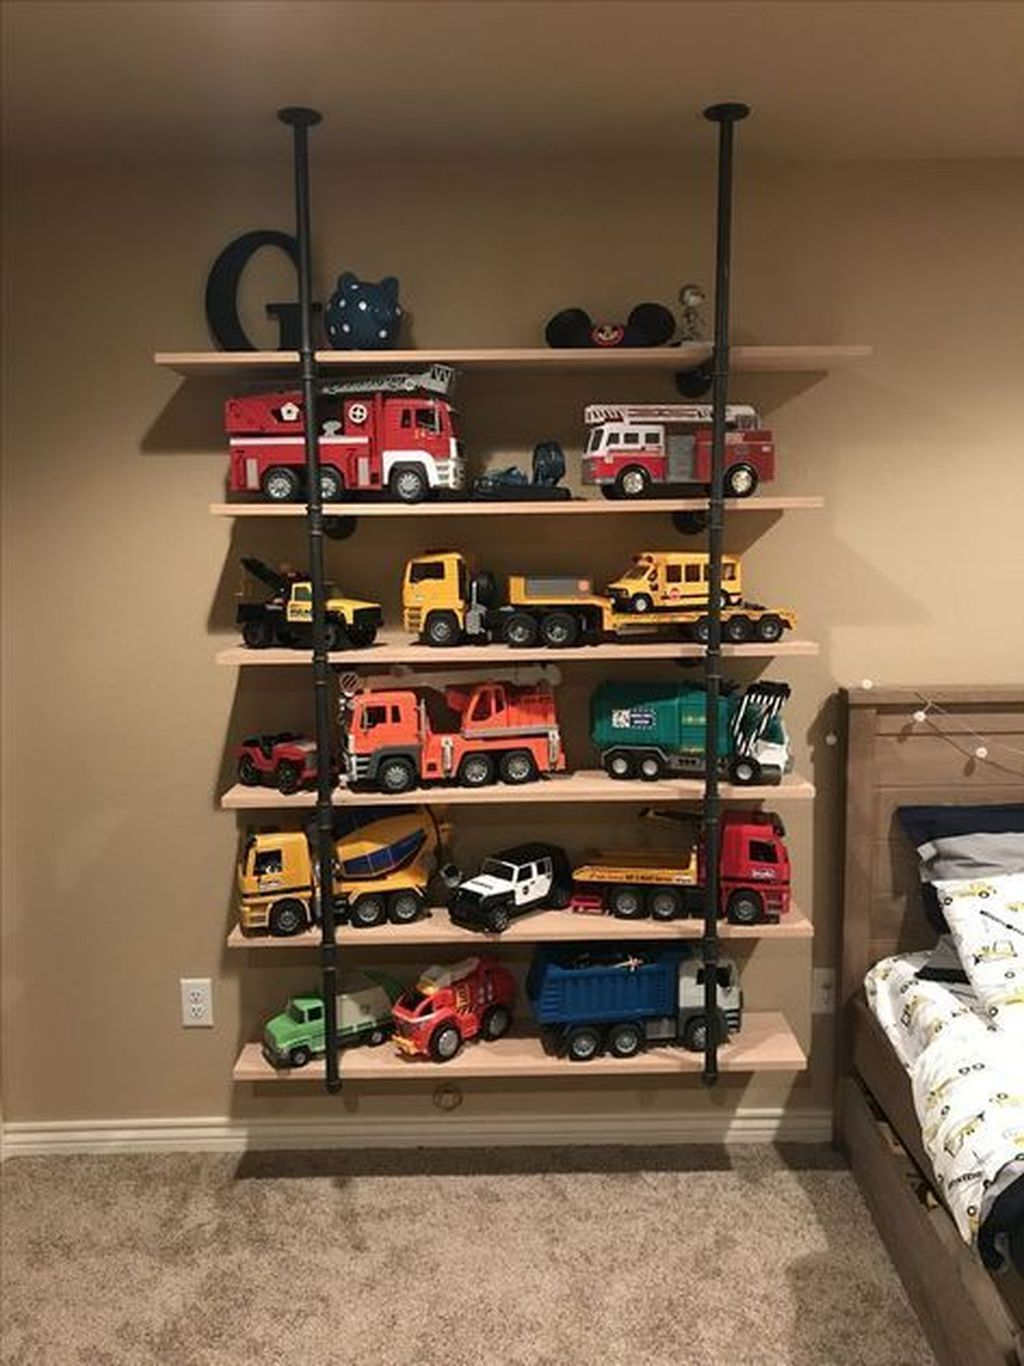 47 Amazing Hanging Kids Toys Storage Solutions Ideas images